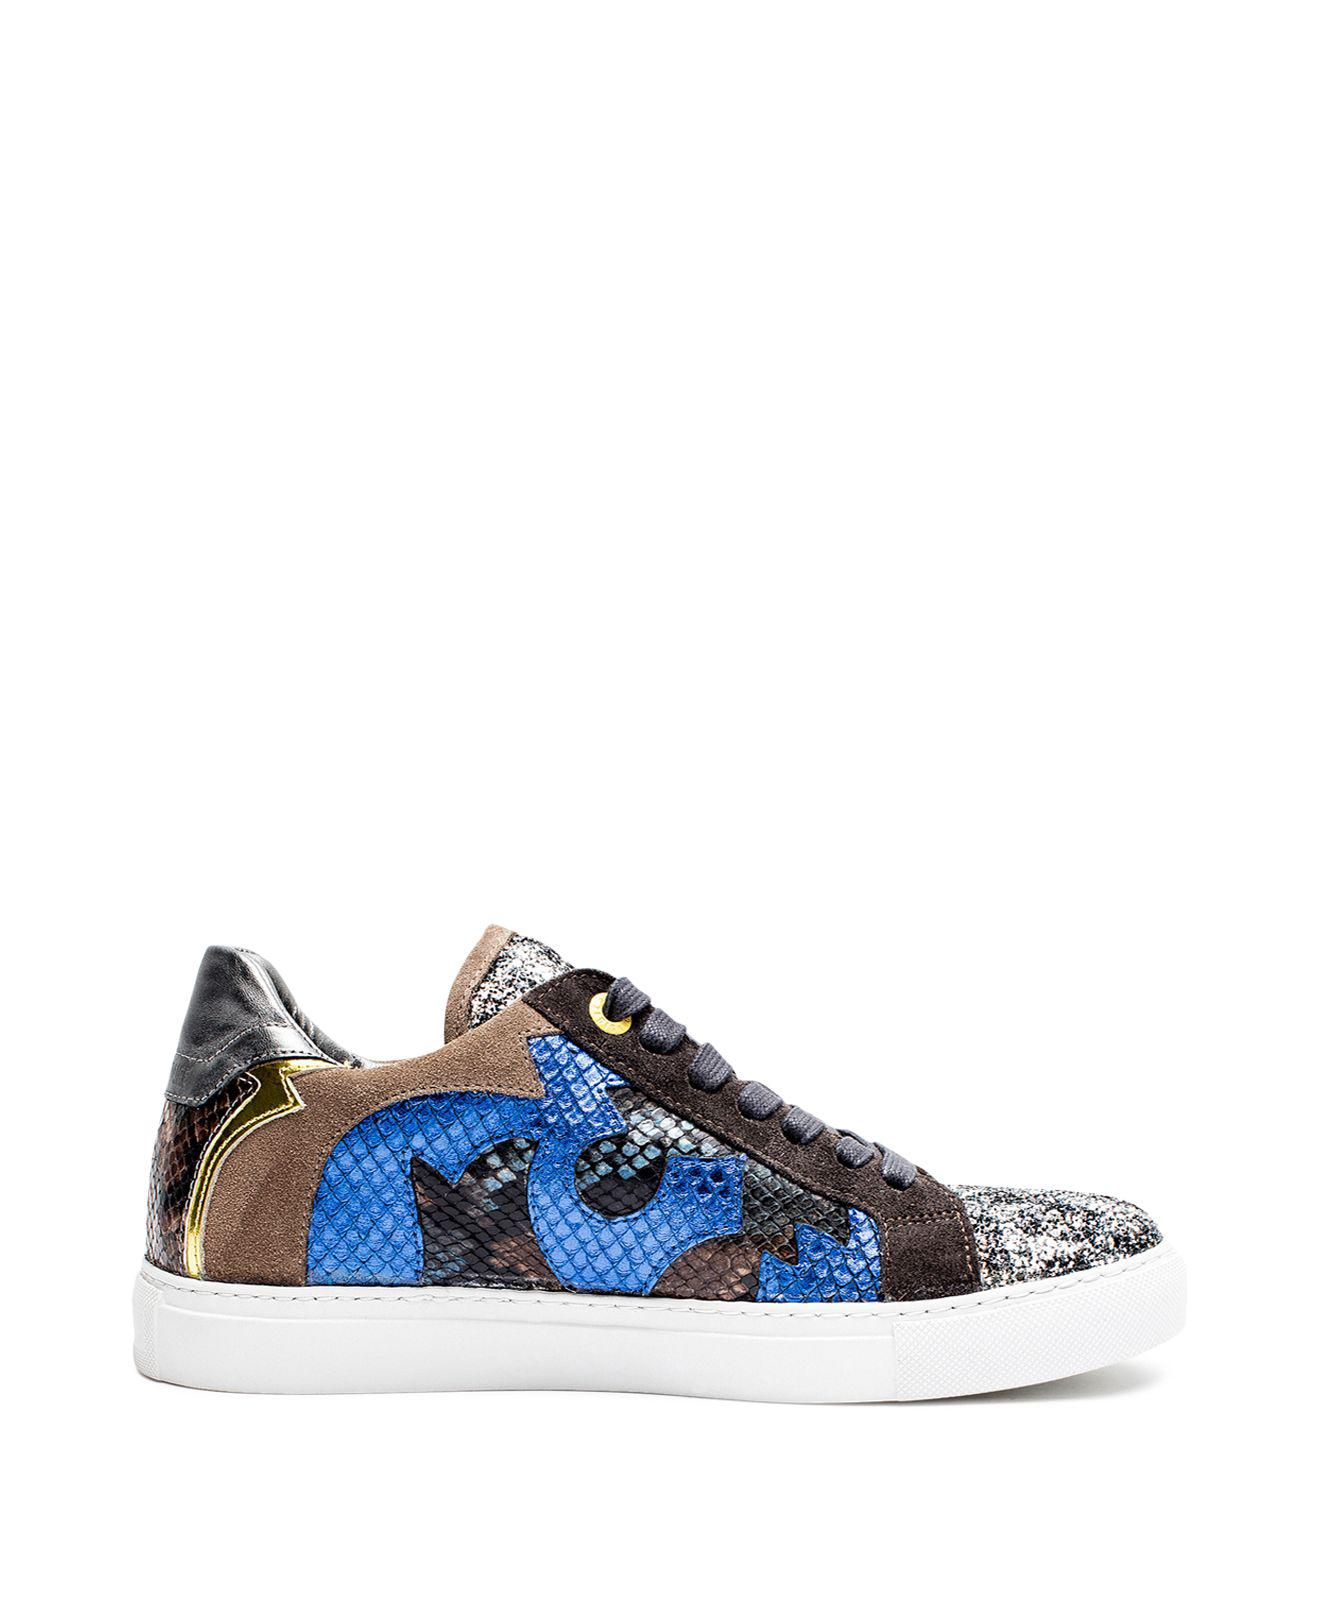 Zadig & Voltaire Zv1747 Nash Glitleo Leather Sneakers dsNNTw0wu